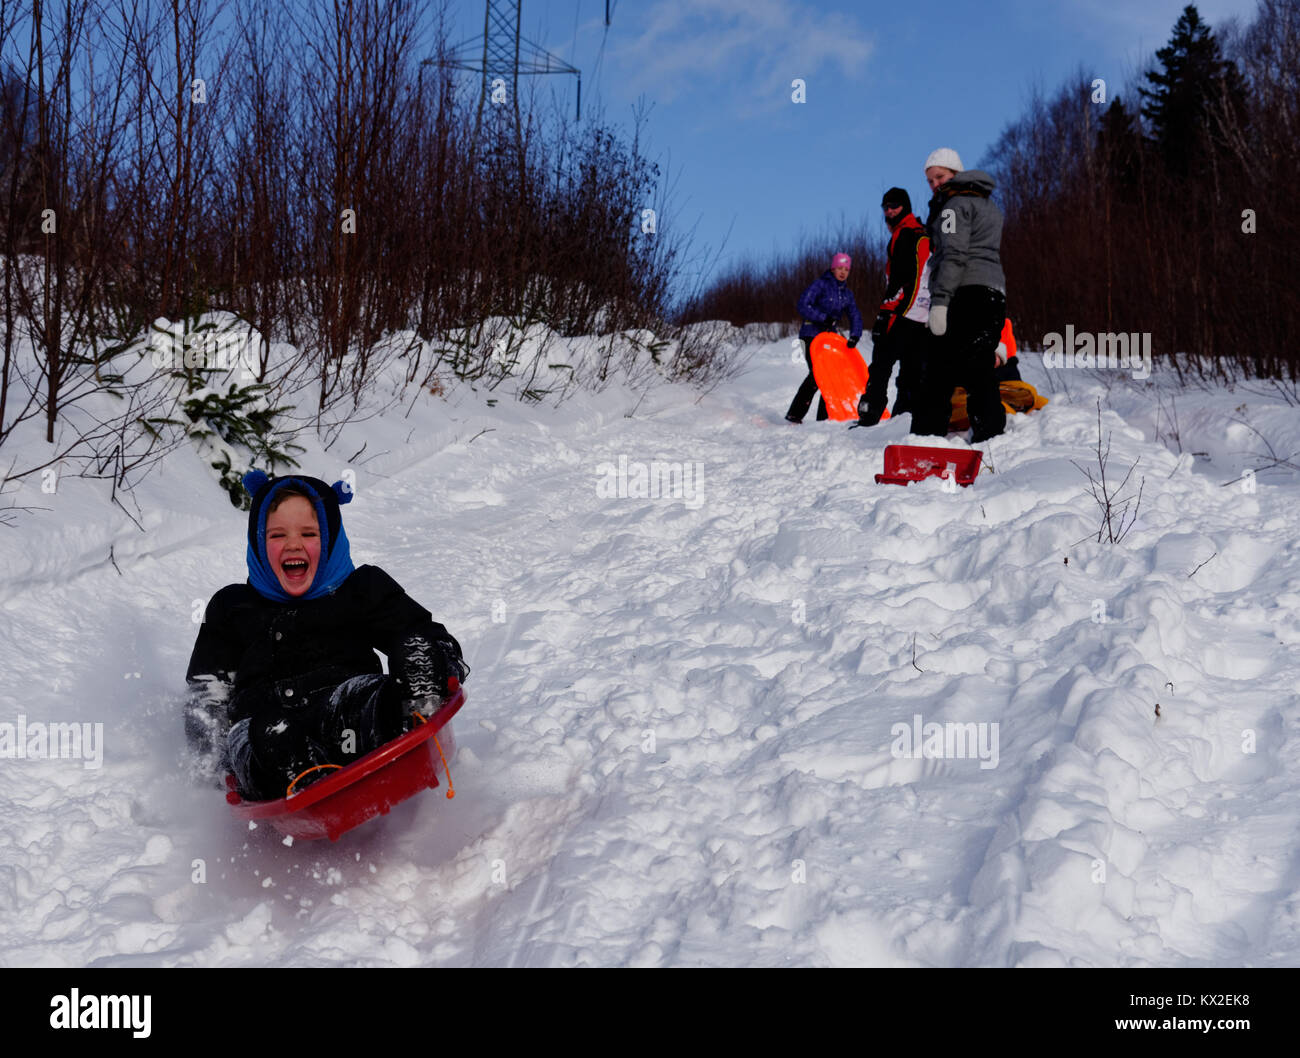 A laughing 5 yr old boy speeding on a sledge while the rest of the family look on - Stock Image